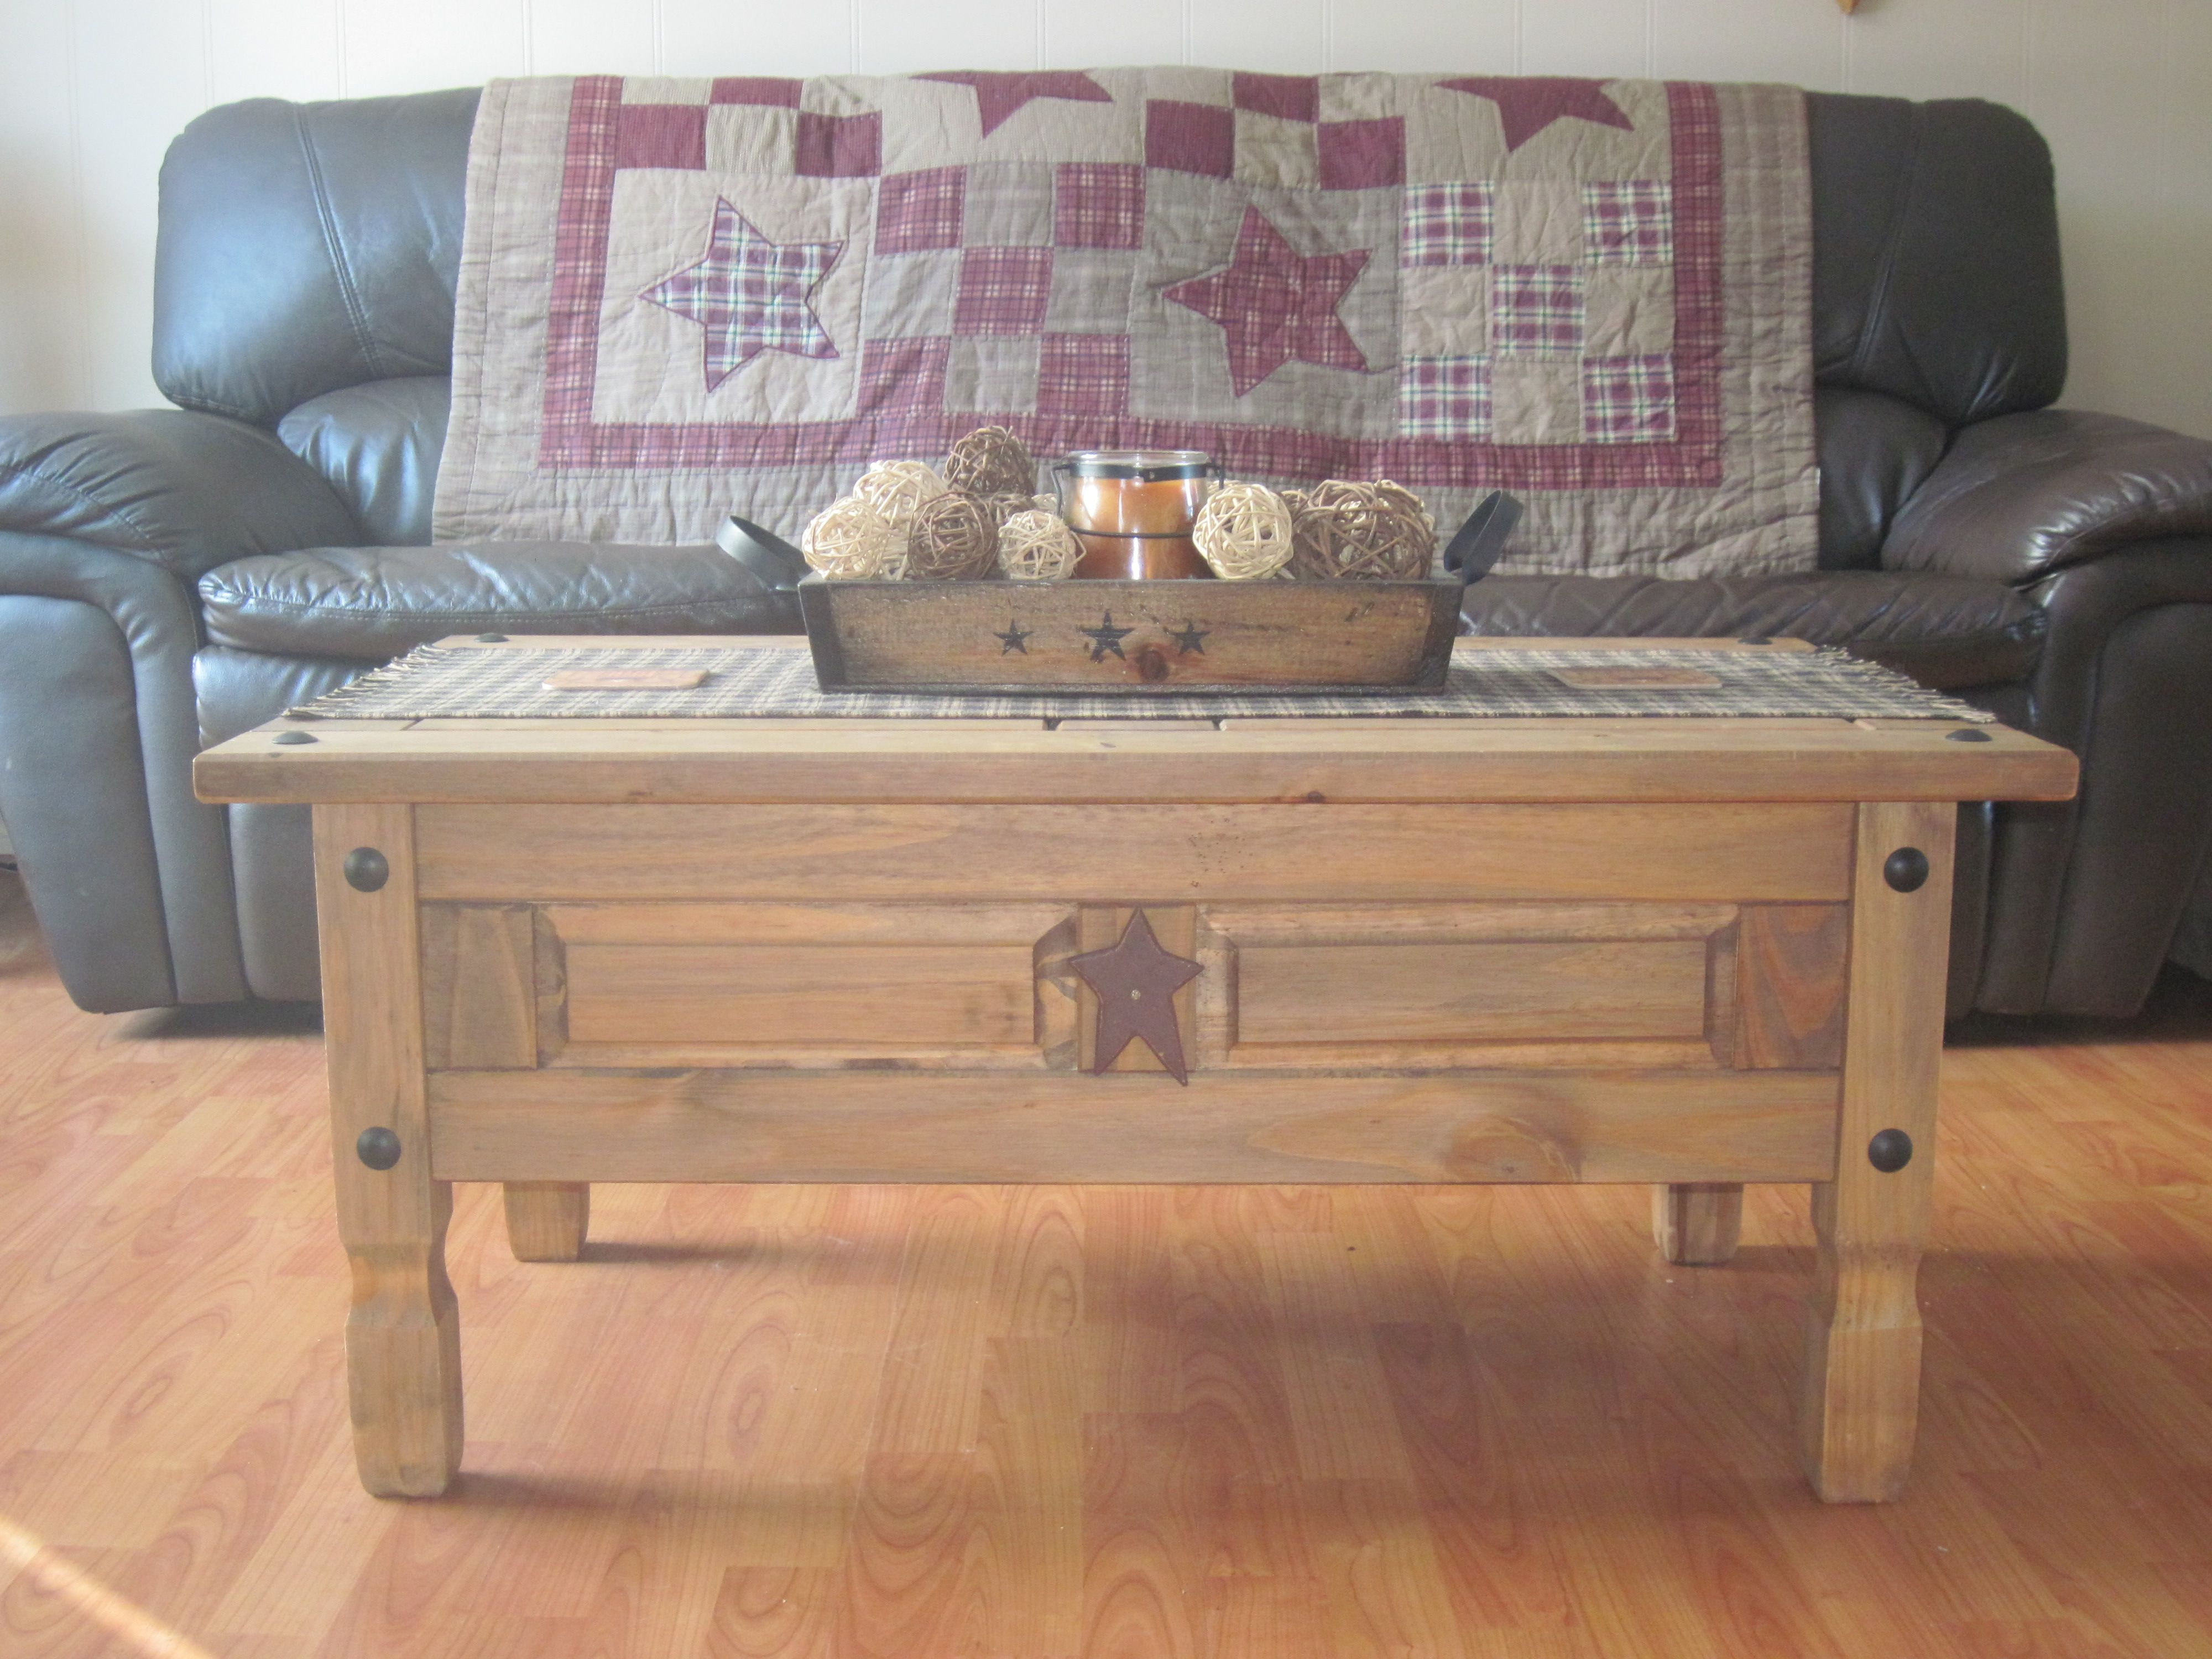 Coffee Table Primitive Decorating Country Country Decor Rustic Rustic Primitive Decor